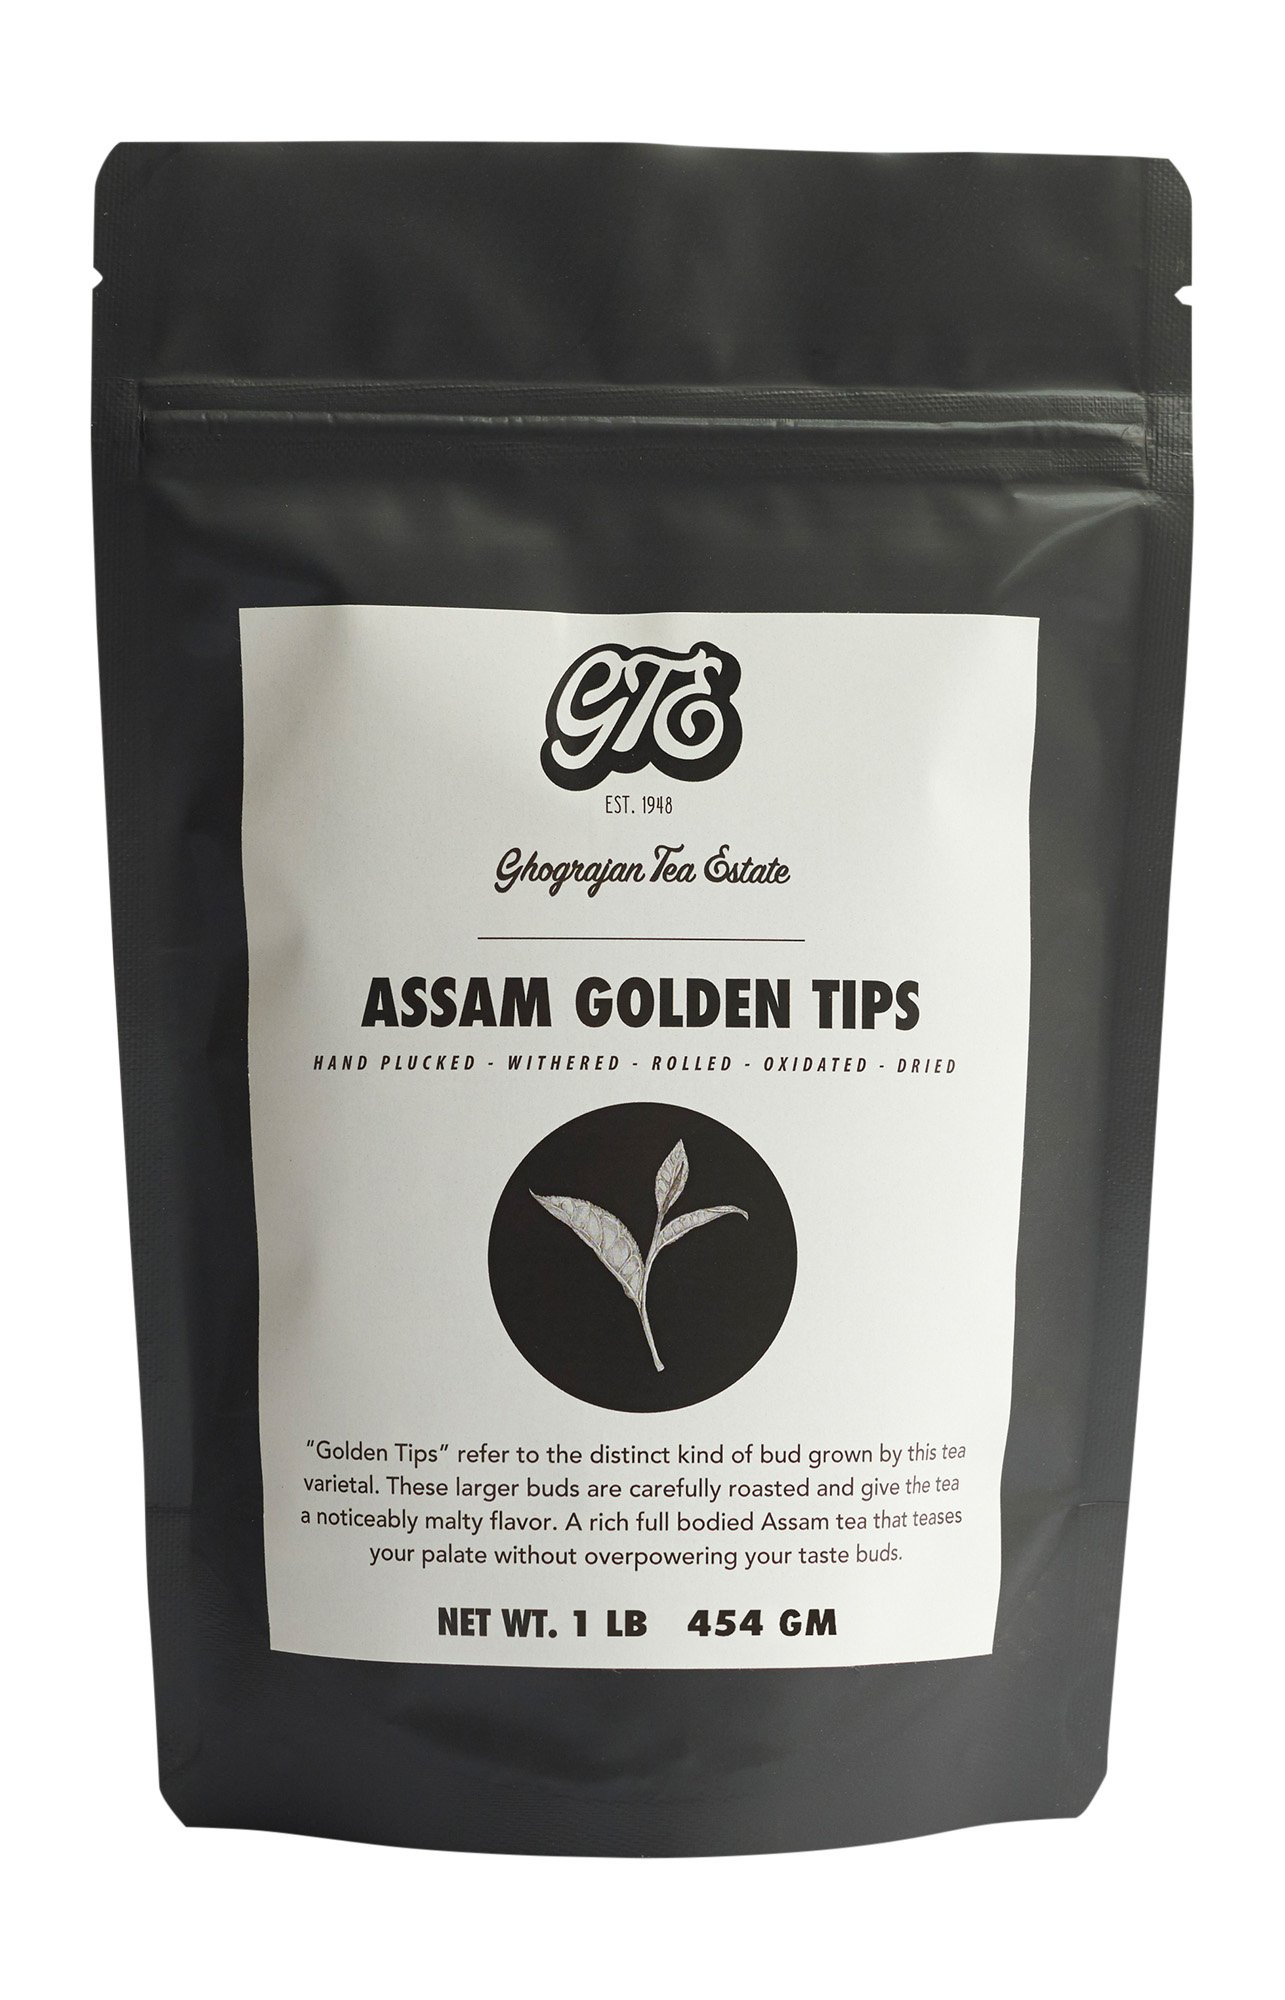 Assam Loose Leaf Black Tea with Golden Tips (200+ Cups) - Premium Second Flush Harvest - Malty, Full Bodied Breakfast Tea - Directly Shipped from our Family-Owned Estate in Assam, India - Bulk Pouch